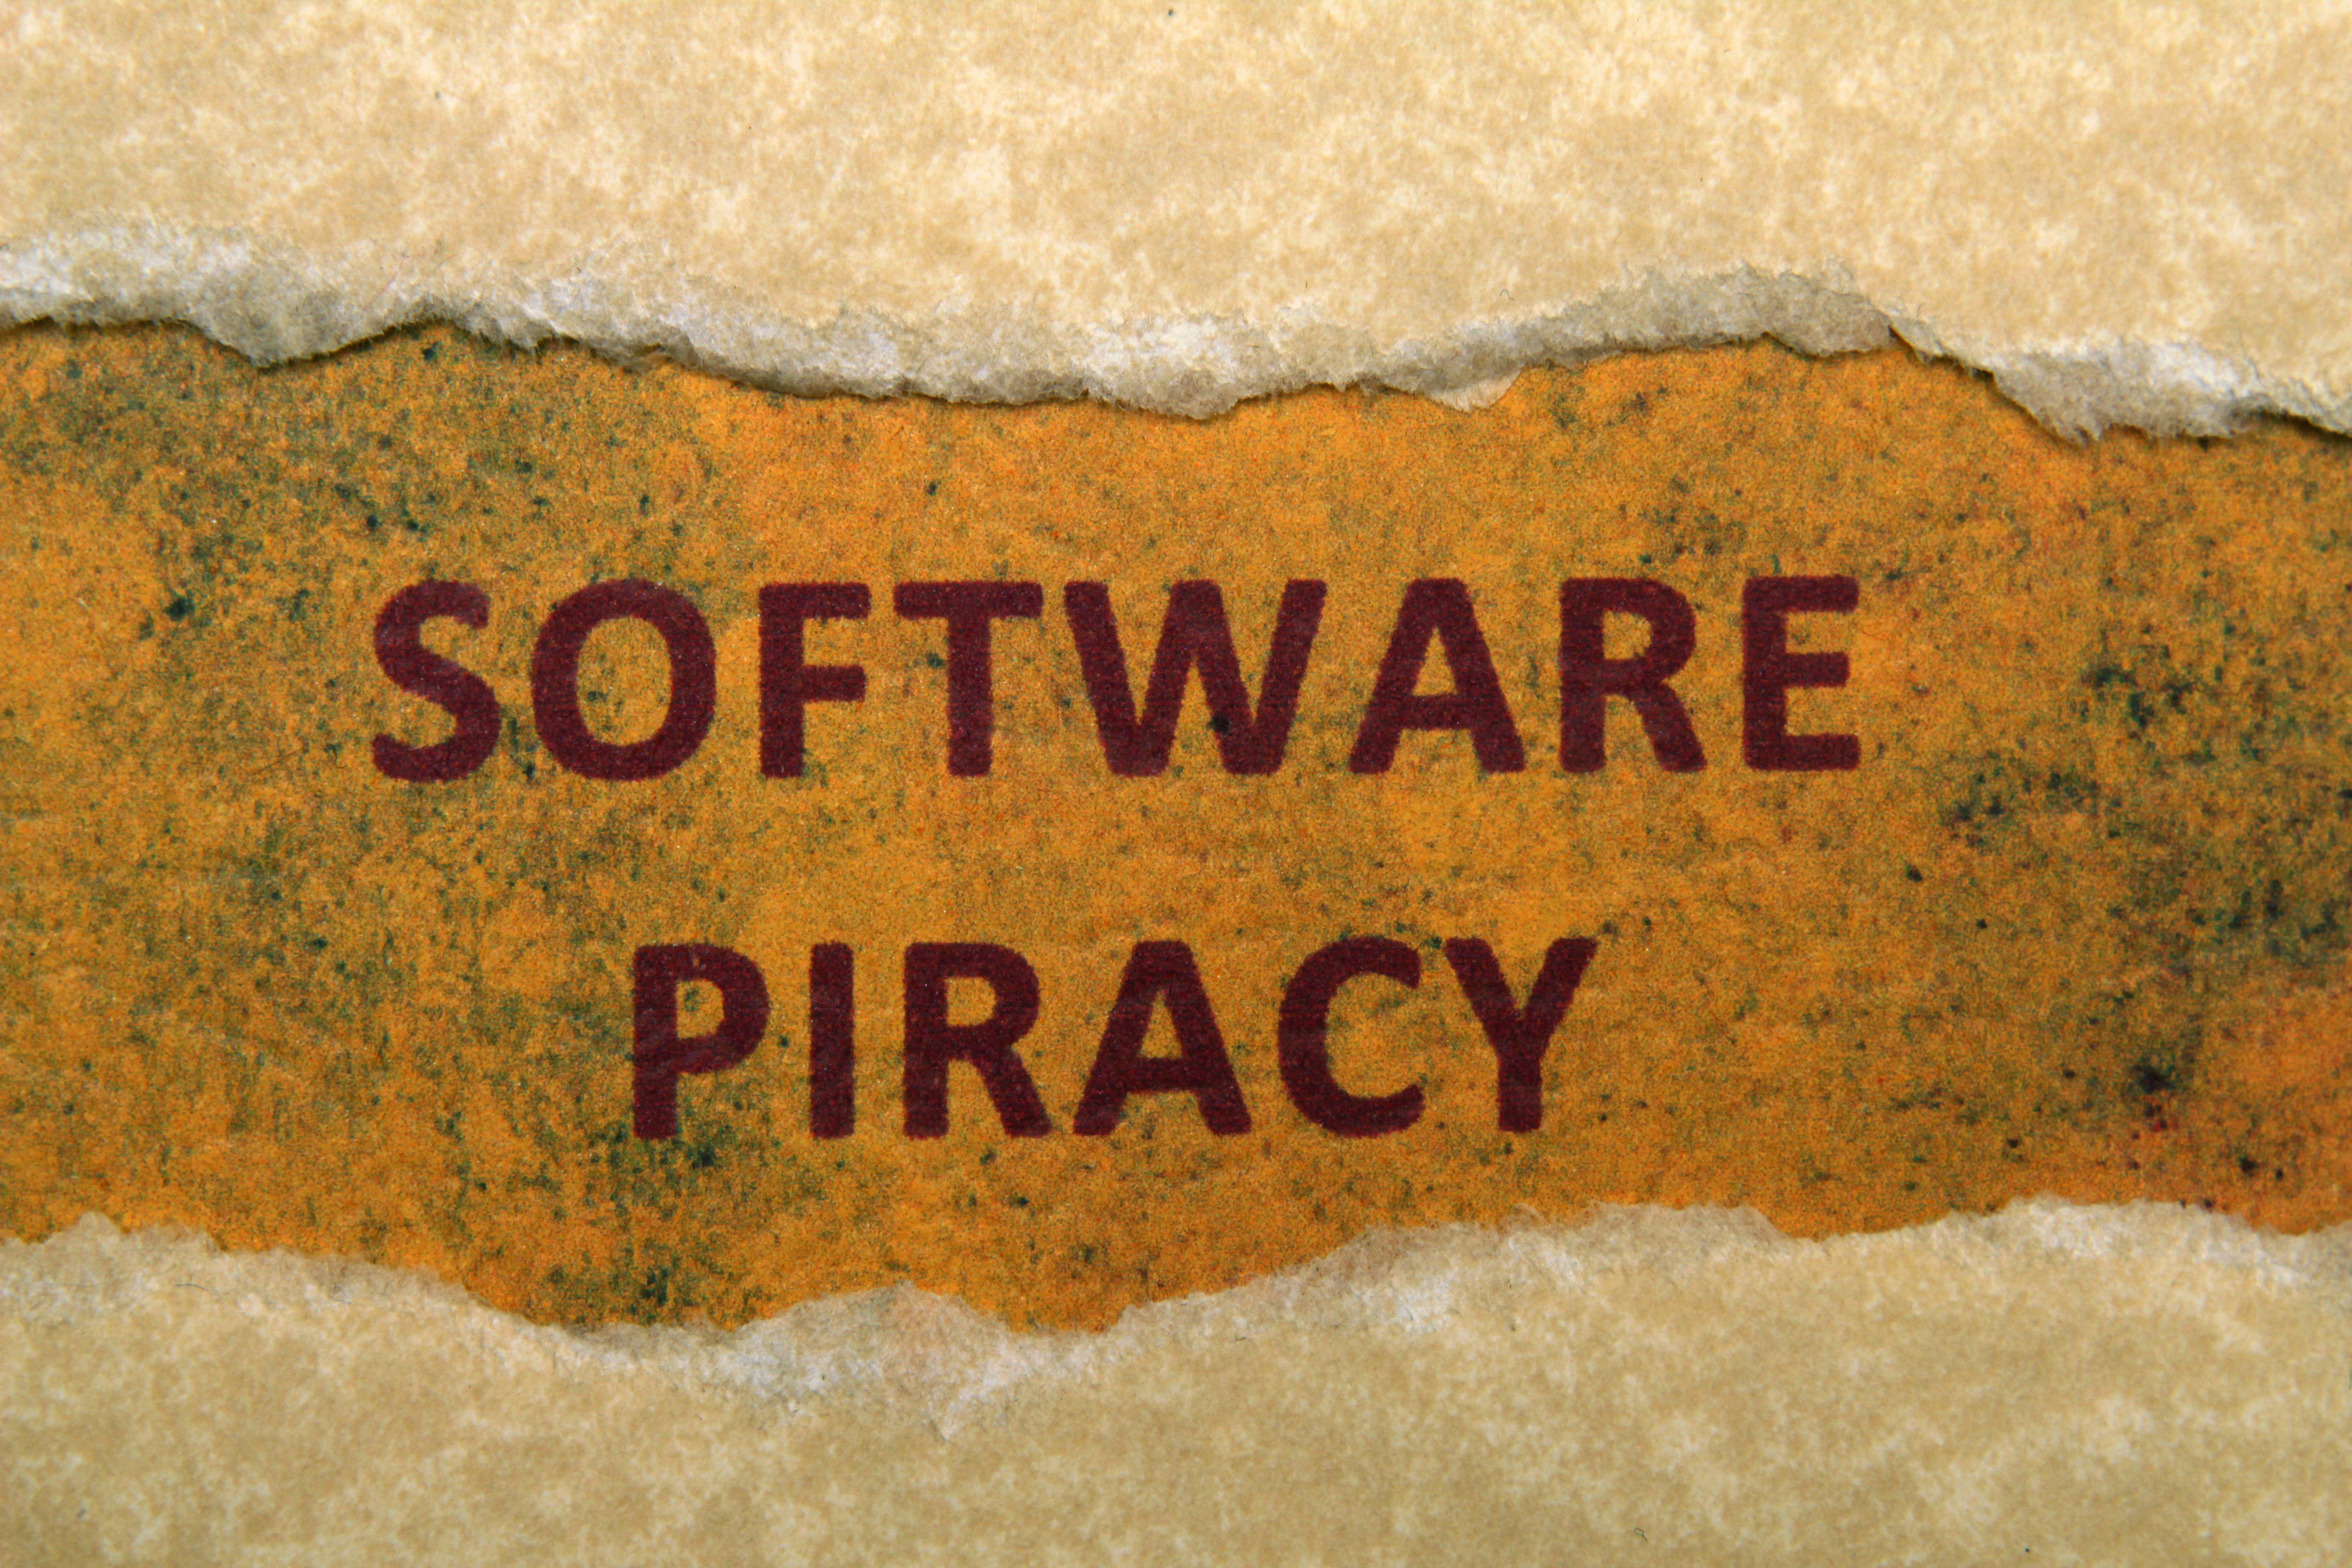 Legal Penalties for Software Piracy